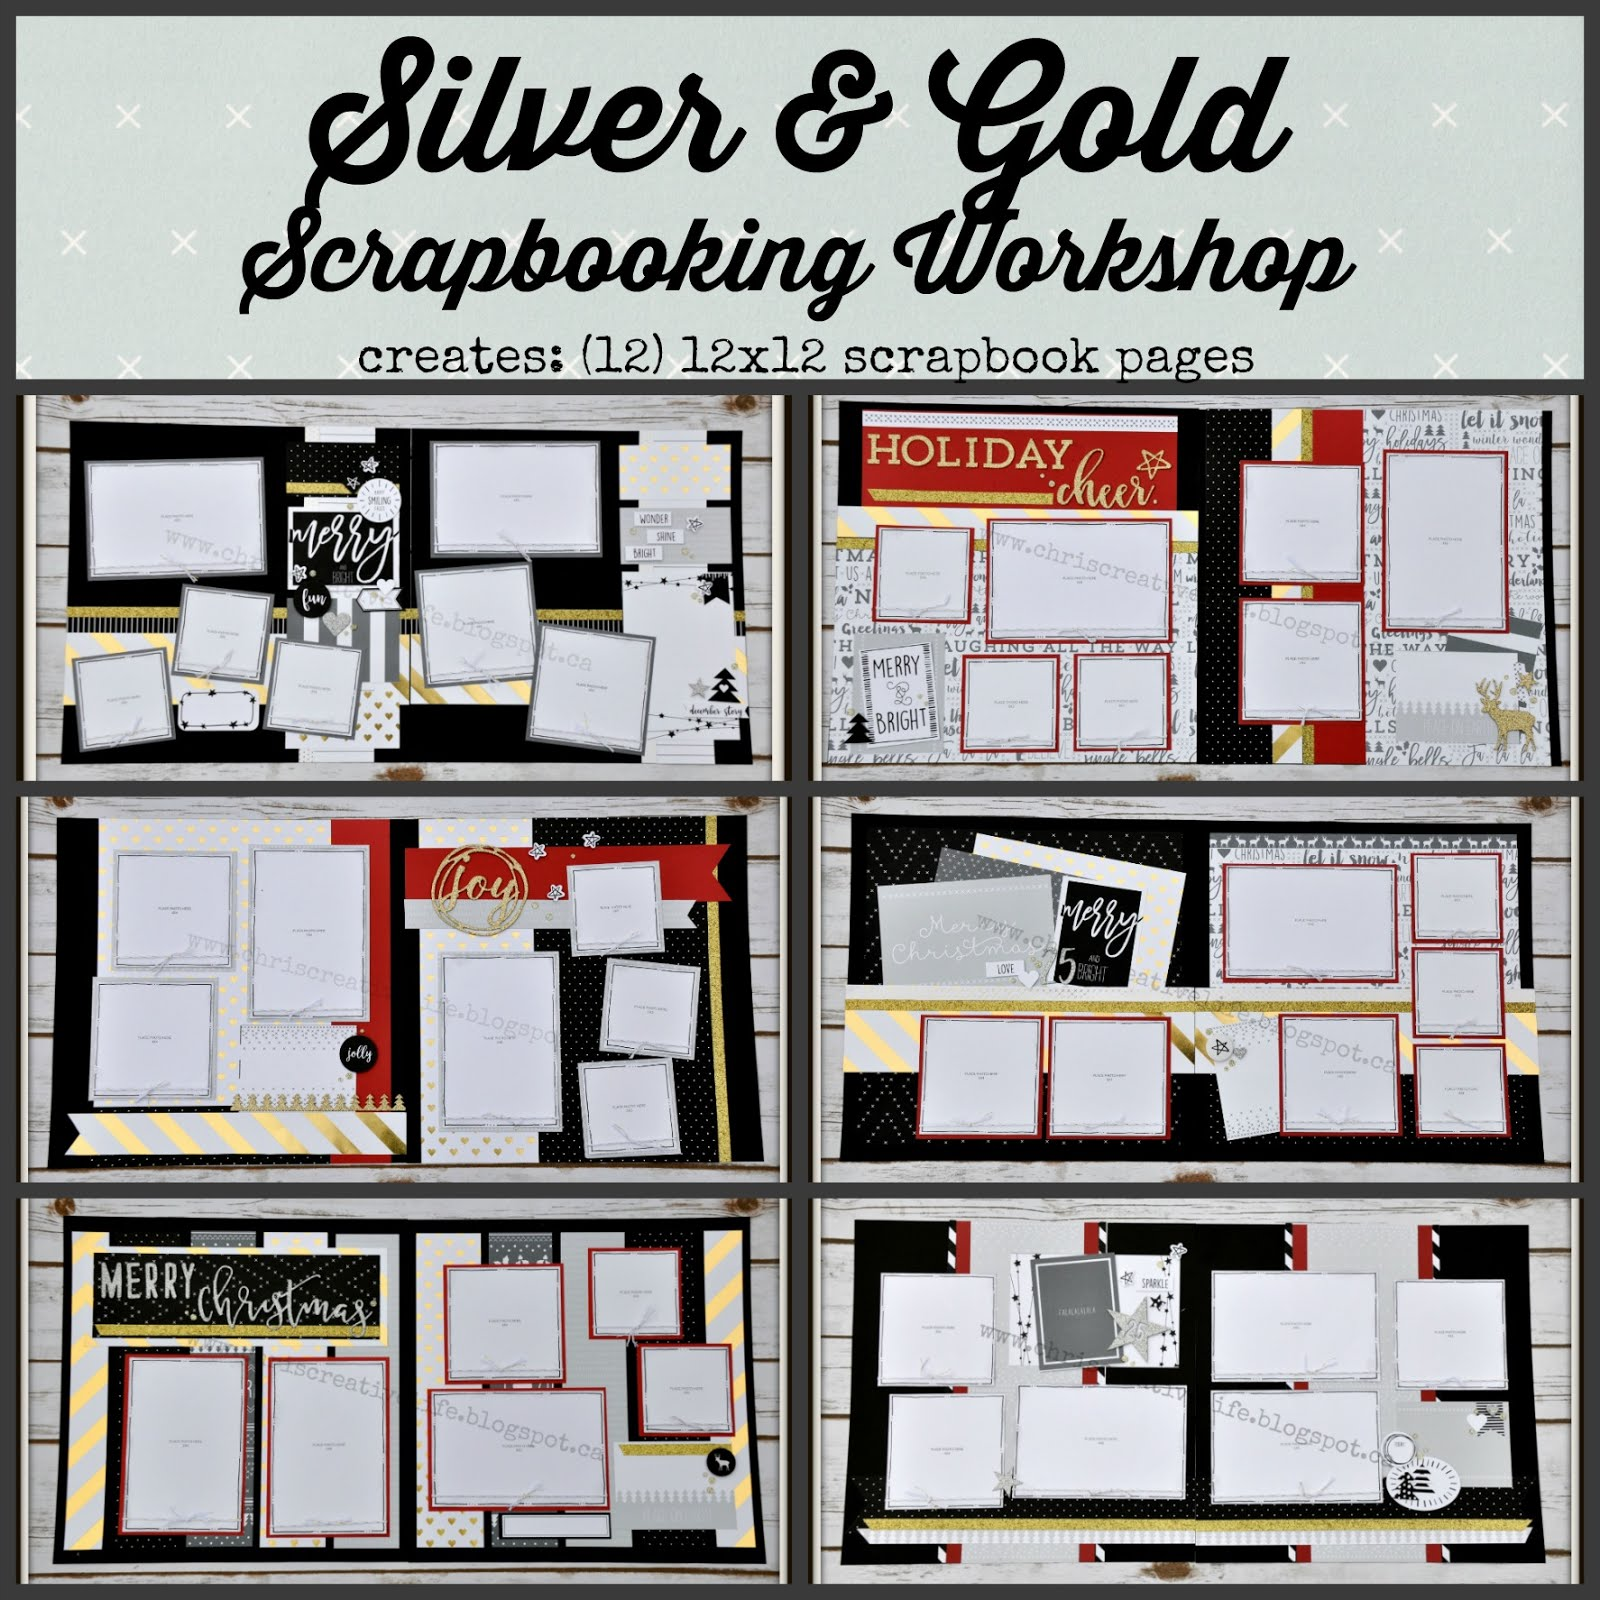 Silver & Gold Scrapbooking Workshop